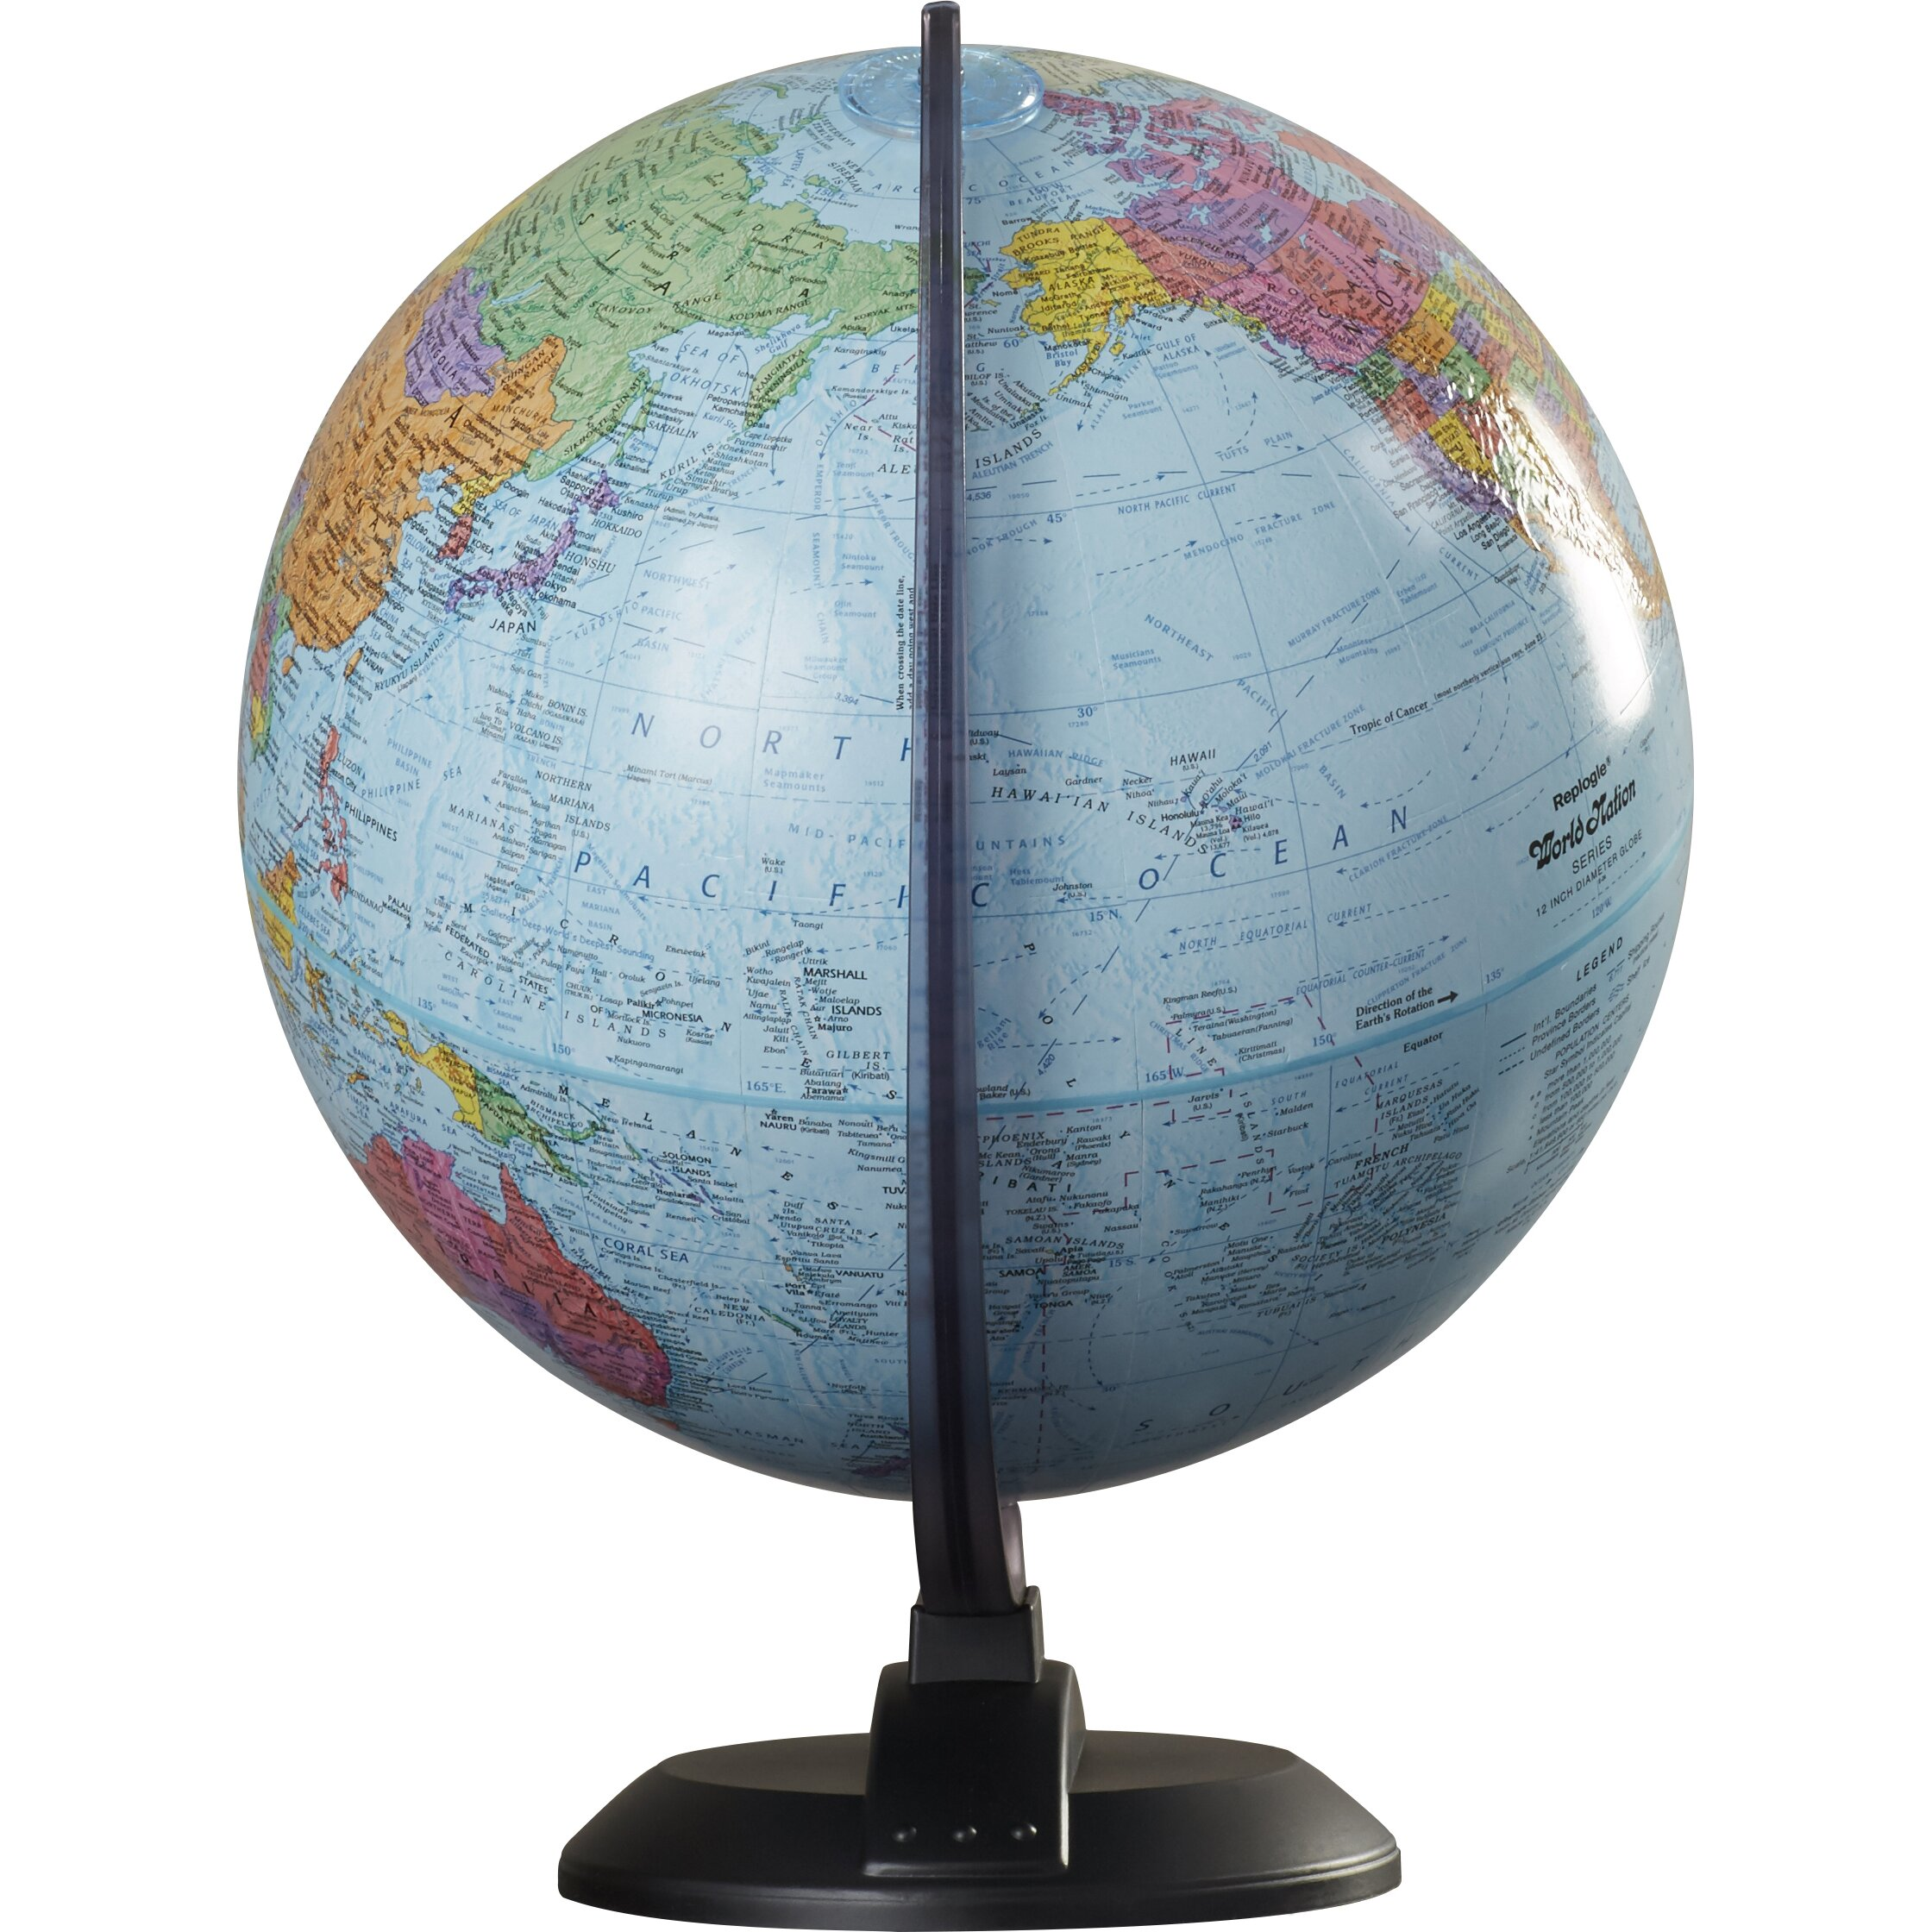 from Peter dating replogle globes